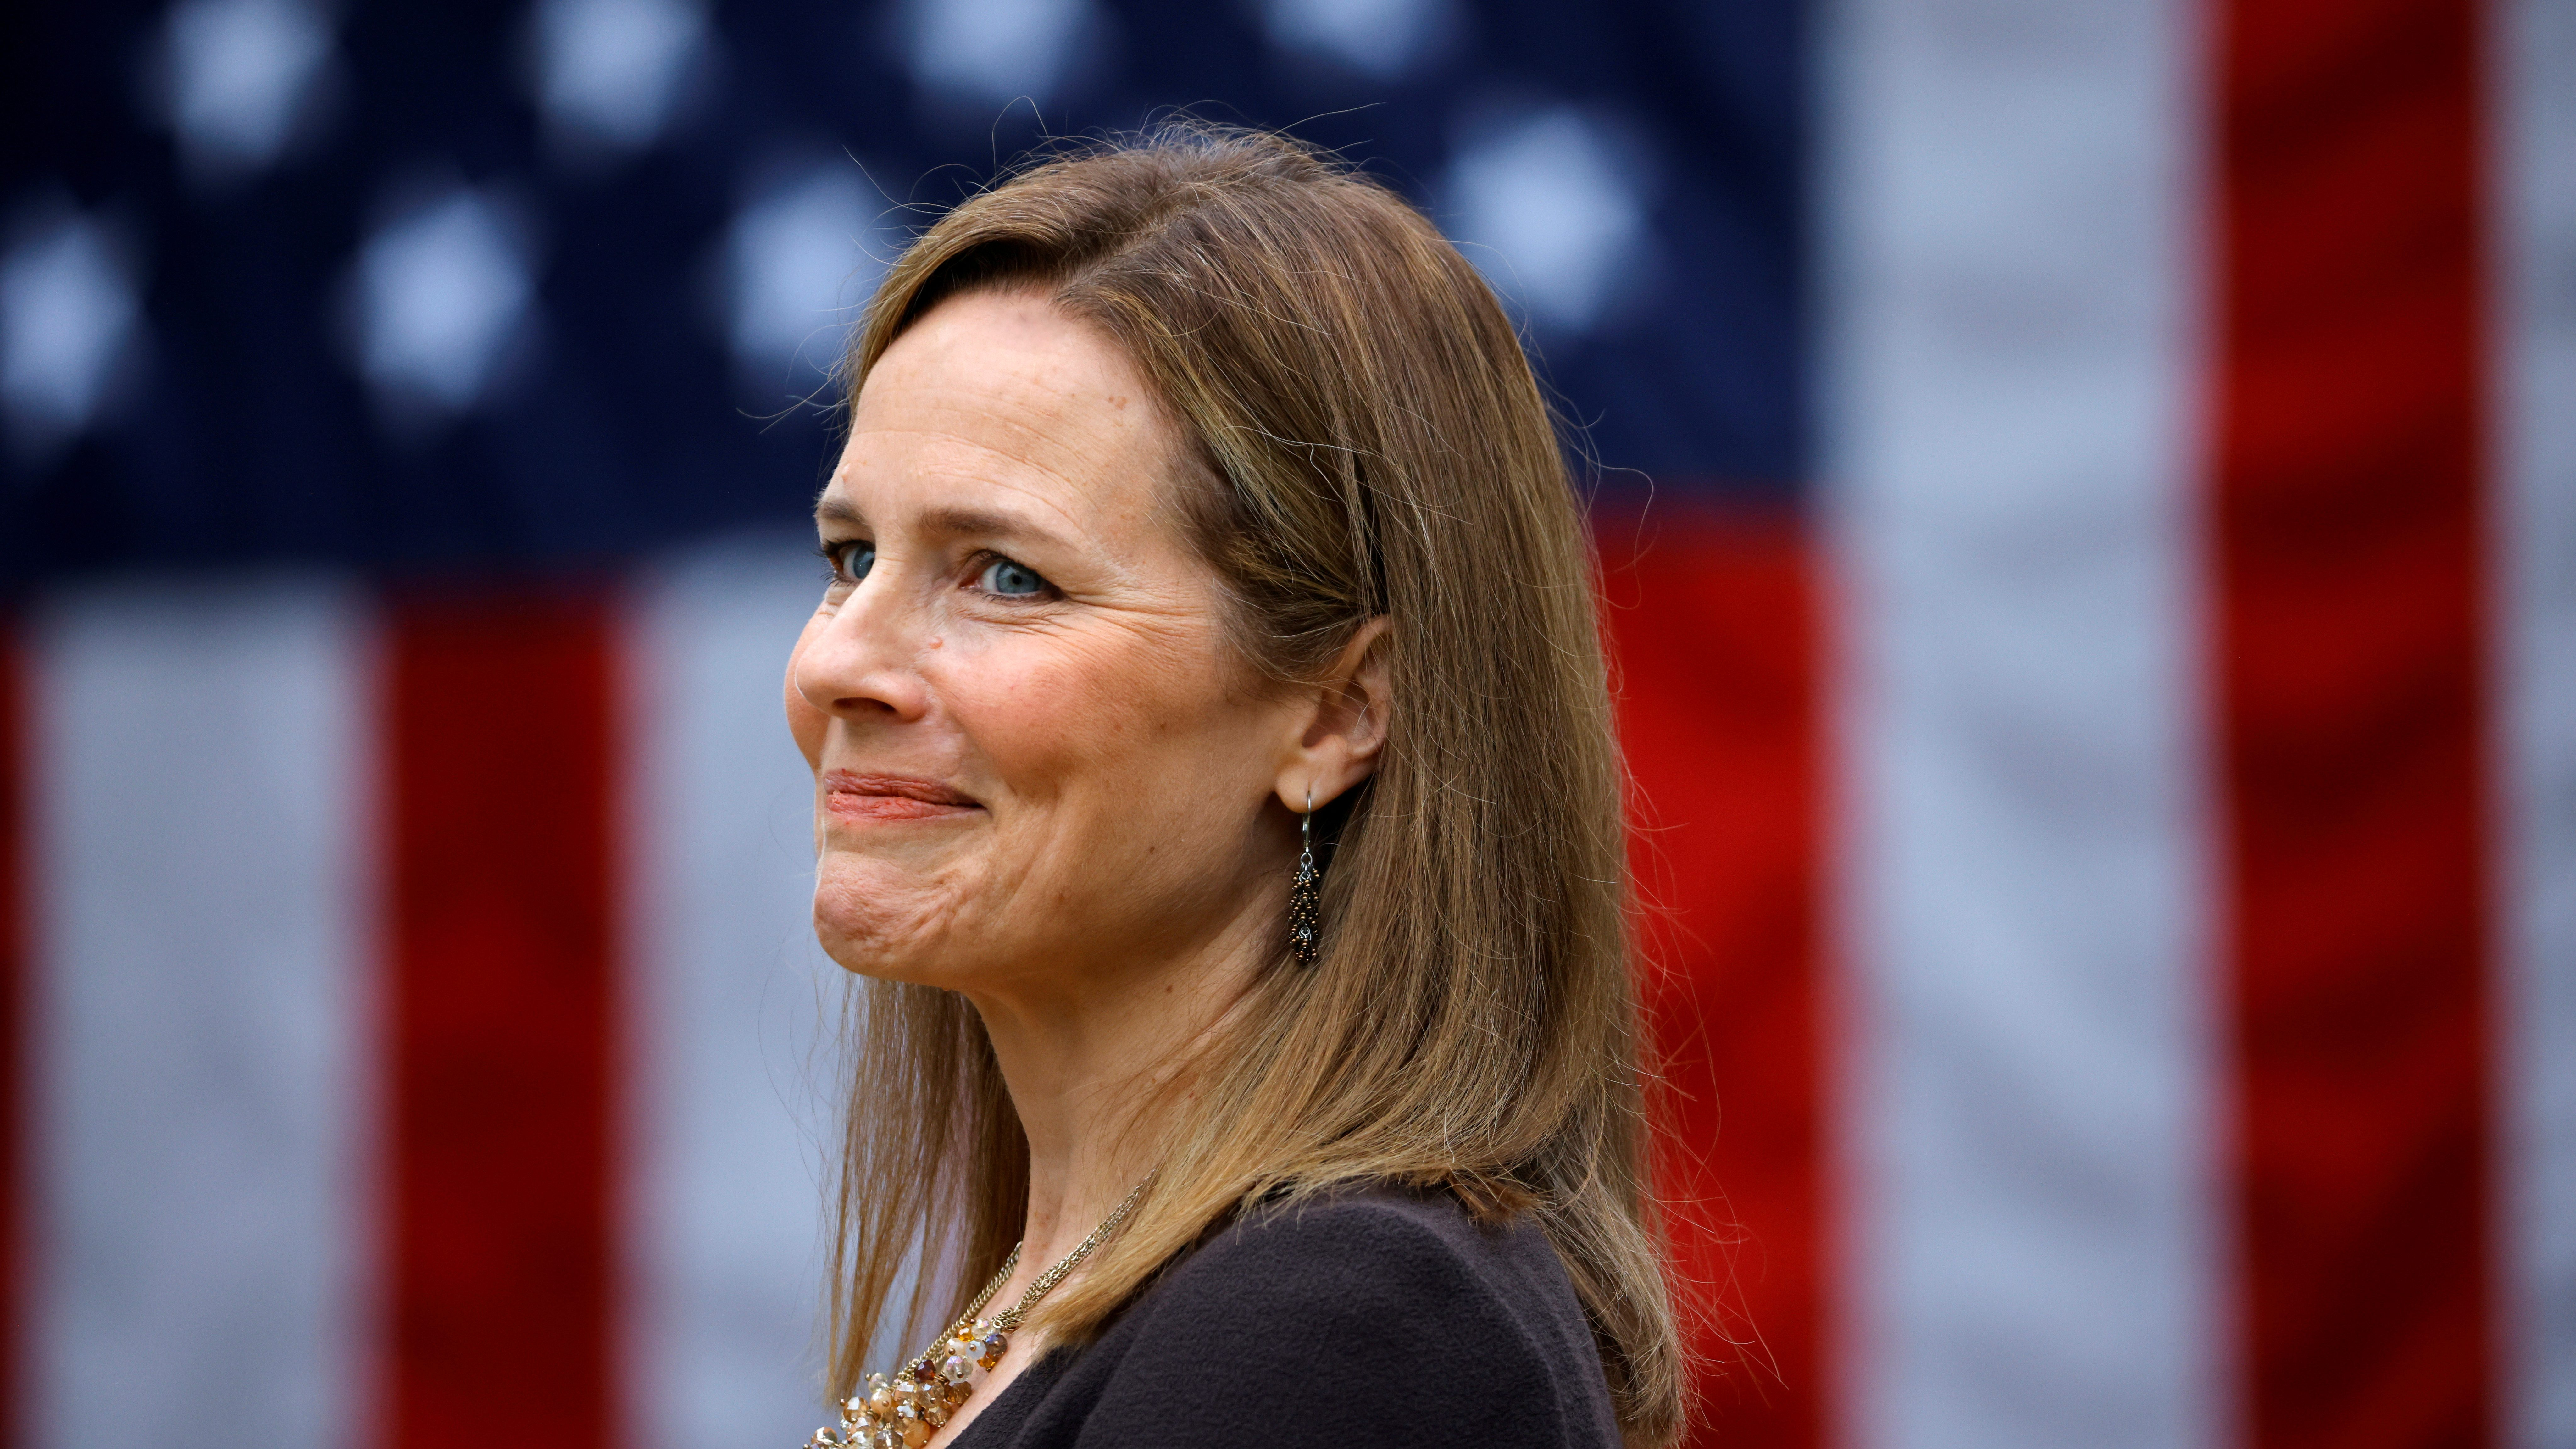 A close-up picture of Supreme Court nominee Amy Coney Barrett, a US Court of Appeals Seventh Circuit Judge, in front of an American flag during the presidential announcement event.